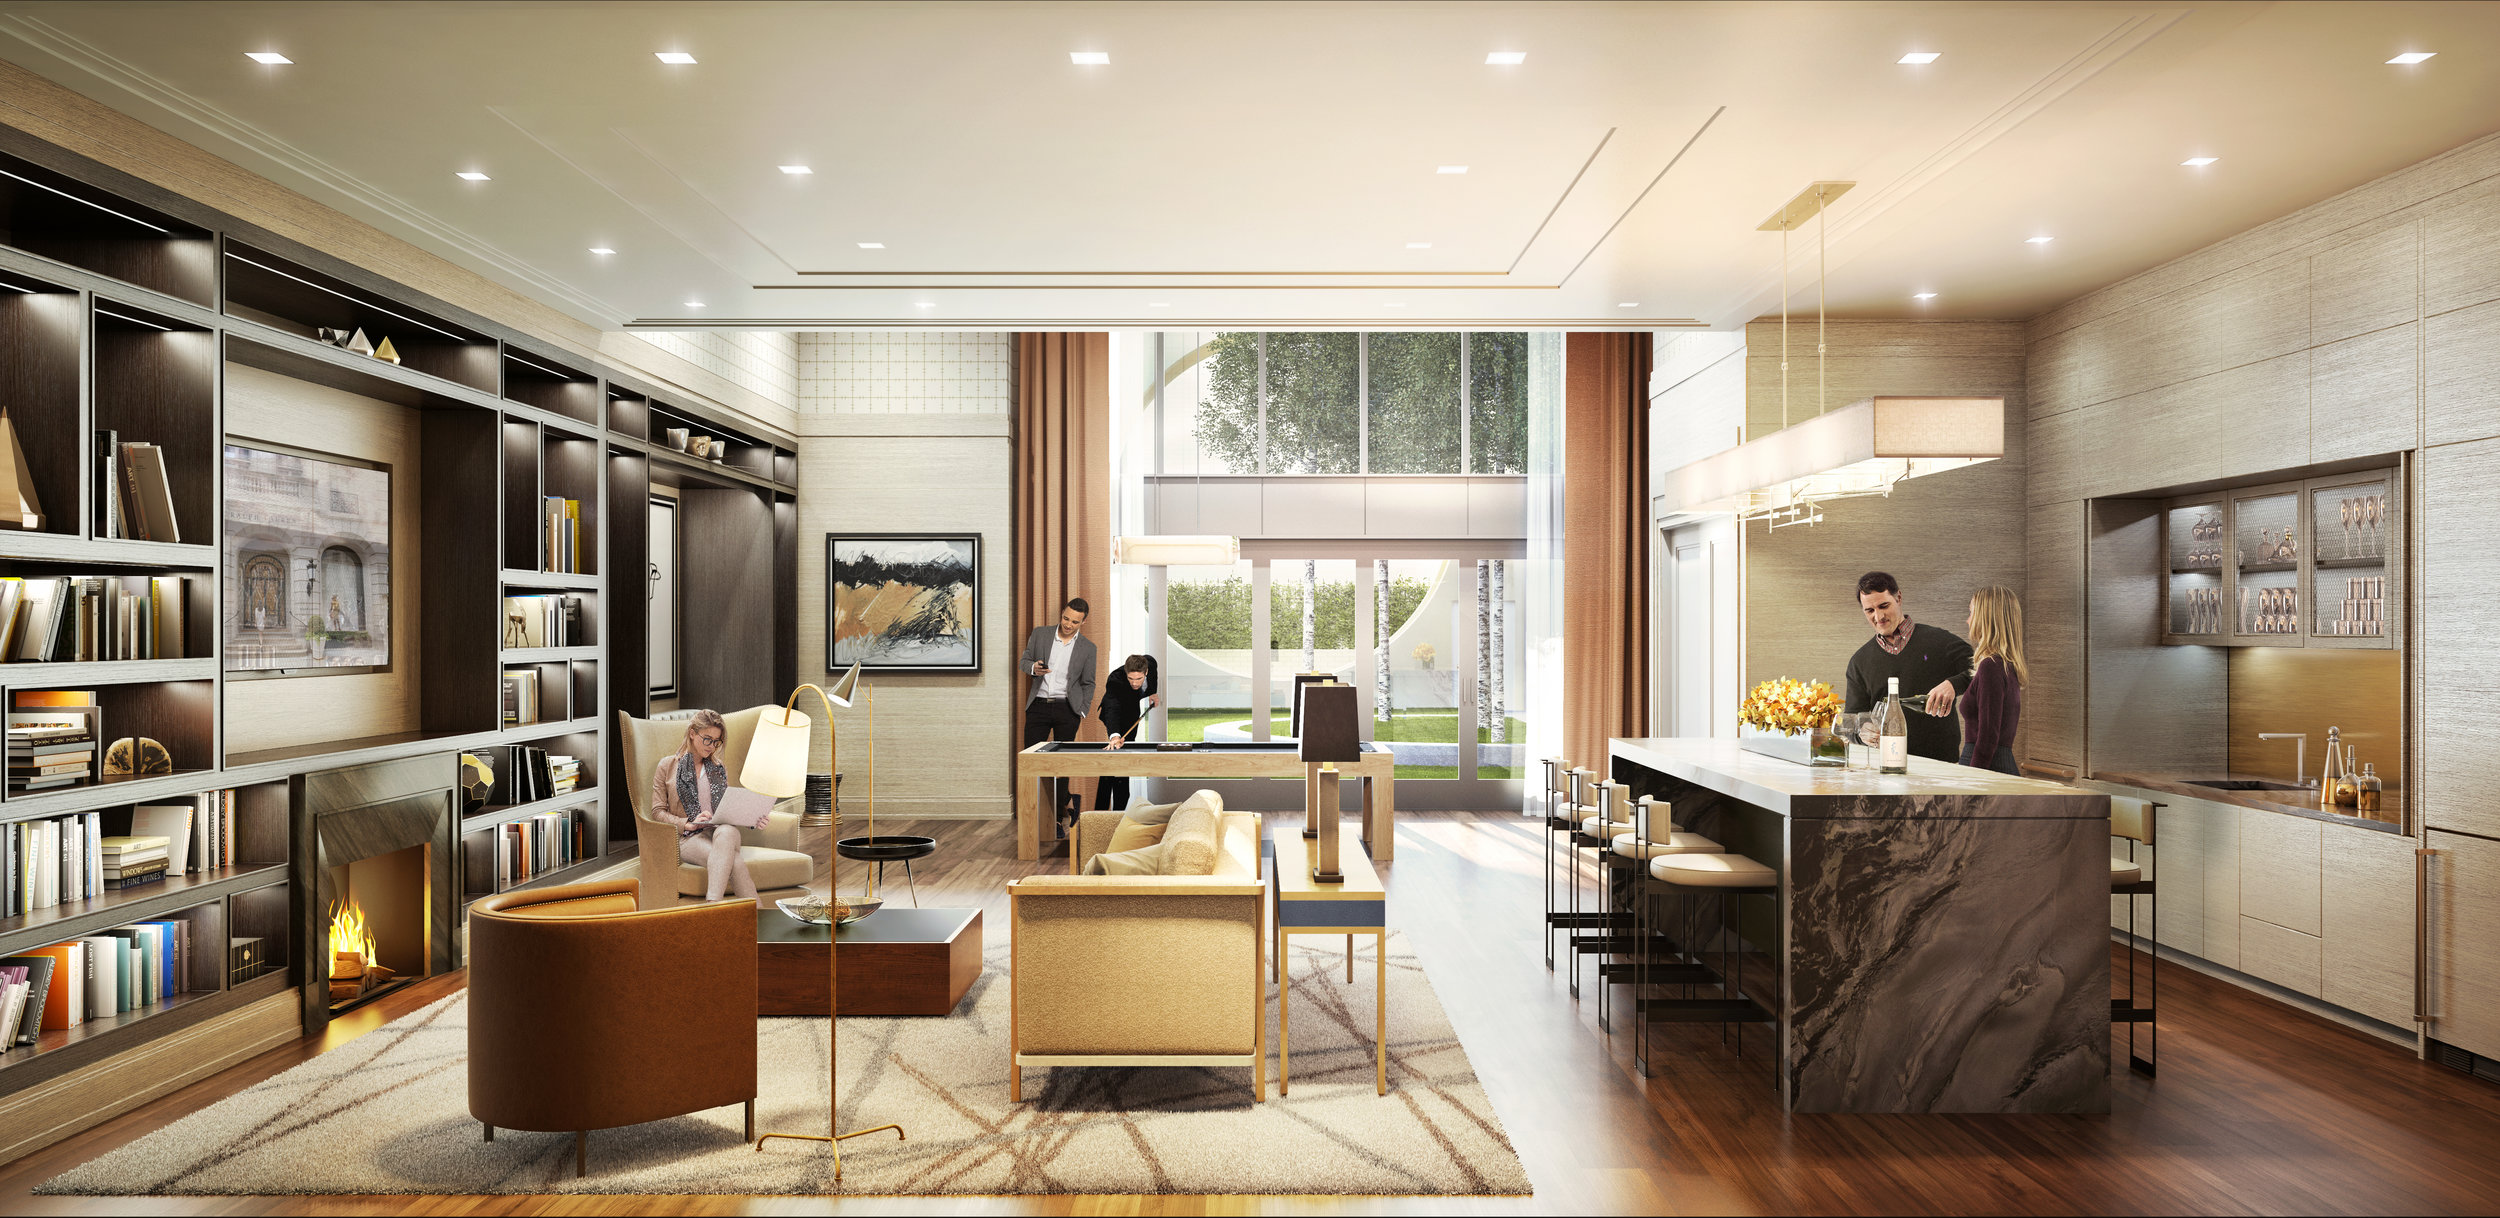 Extell Development Company's The Kent Races Toward's Completion After Top Off on the Upper East Side